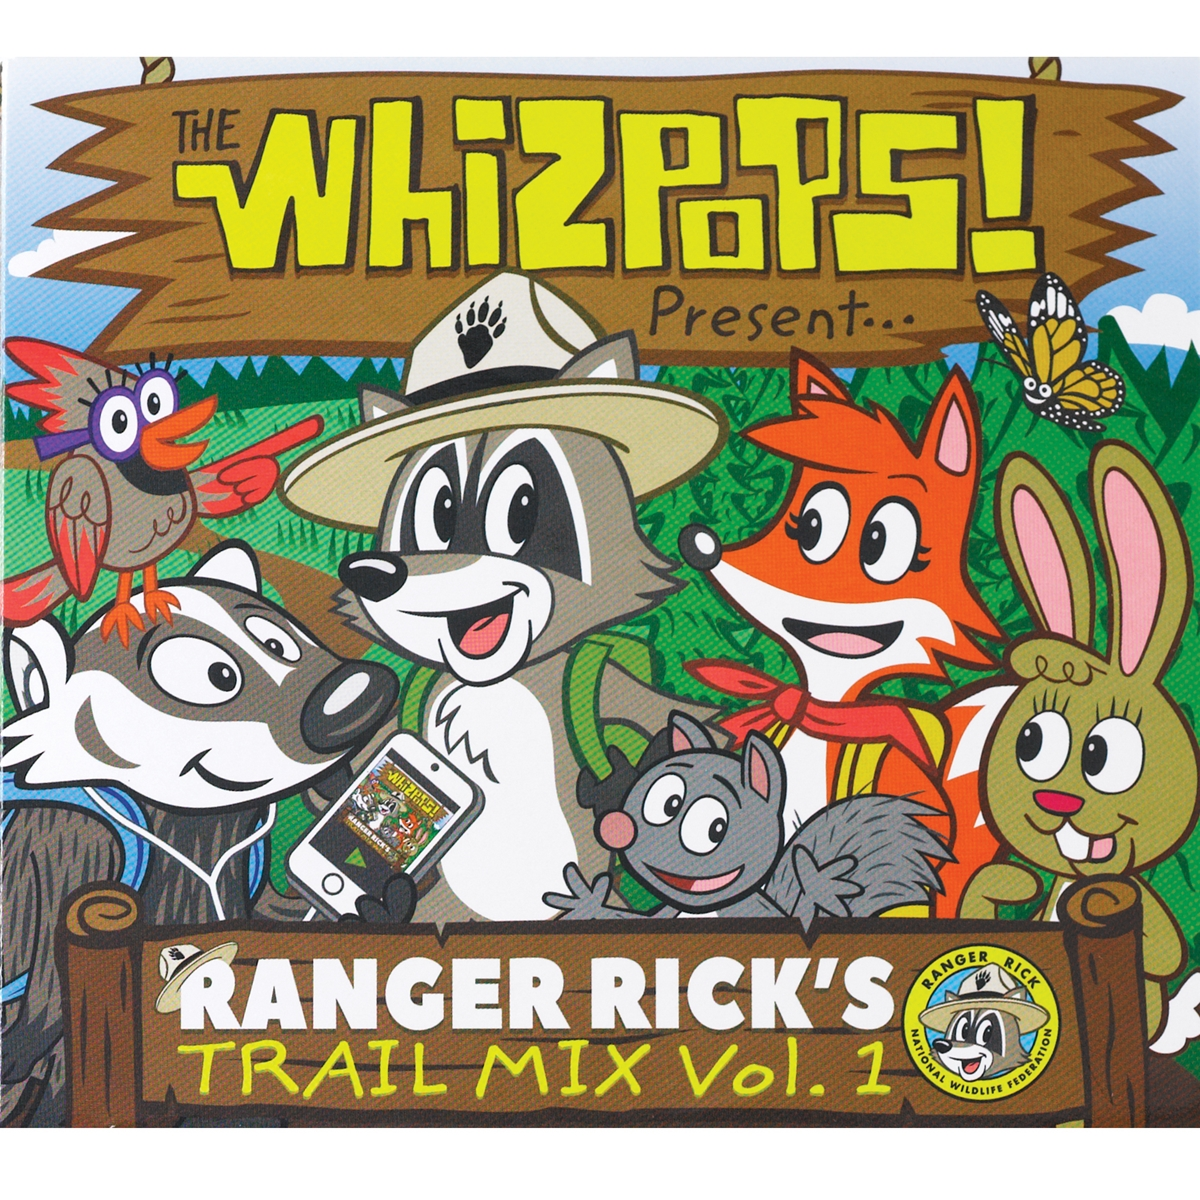 Ranger Rick's Trail Mix CD Vol. 1